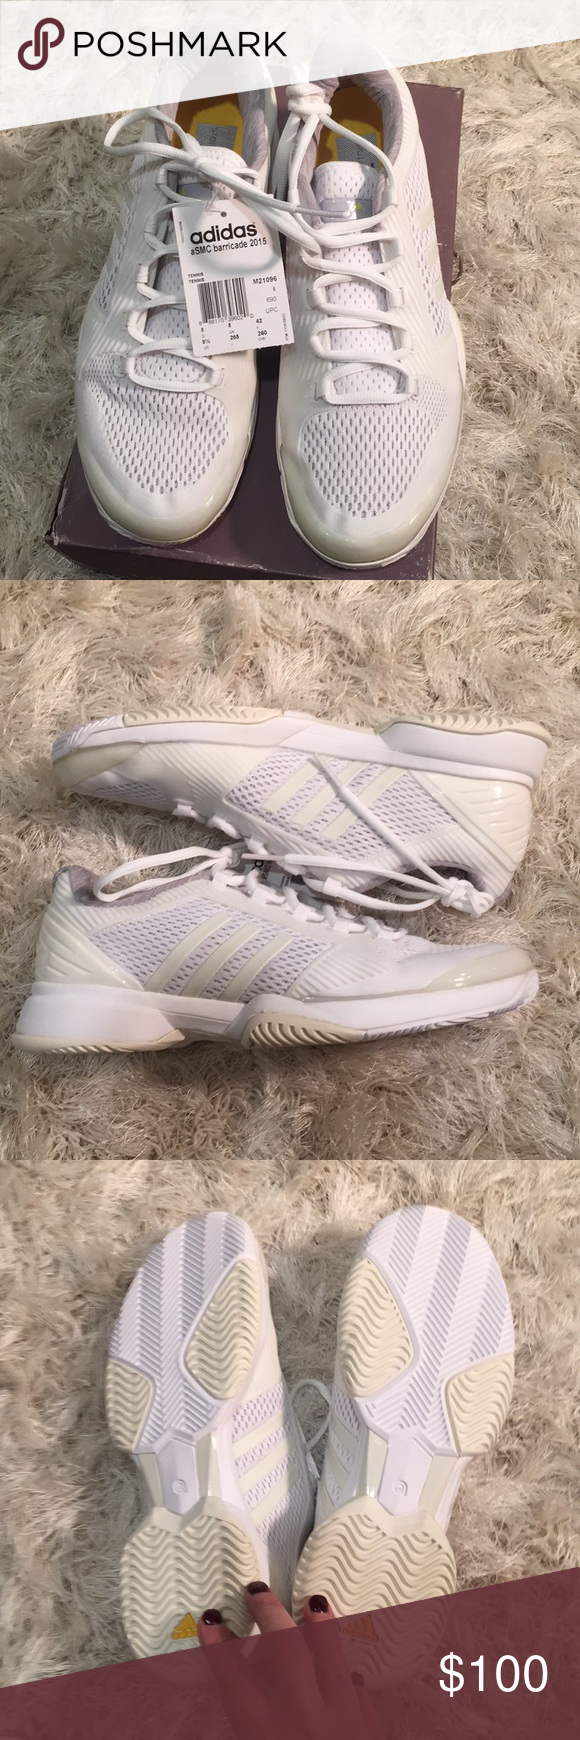 2df666873443e NWT Adidas by Stella McCartney Barricade 2015 100% synthetic, fabric Rubber  sole TORSION SYSTEM for midfoot integrity TPU heel stabilizer Ultra  responsive ...